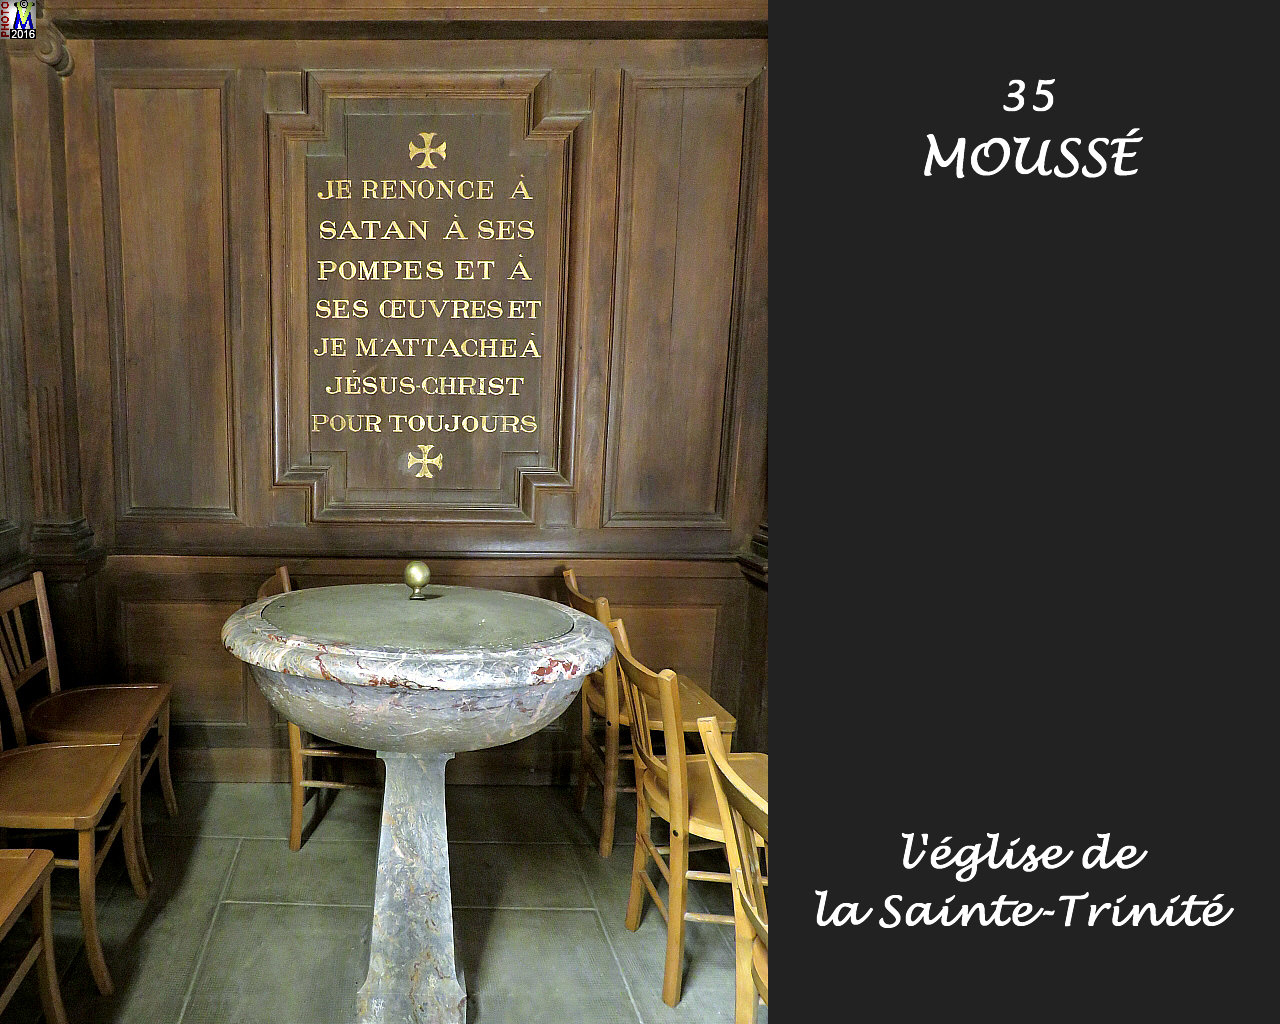 35MOUSSE_eglise_1142.jpg